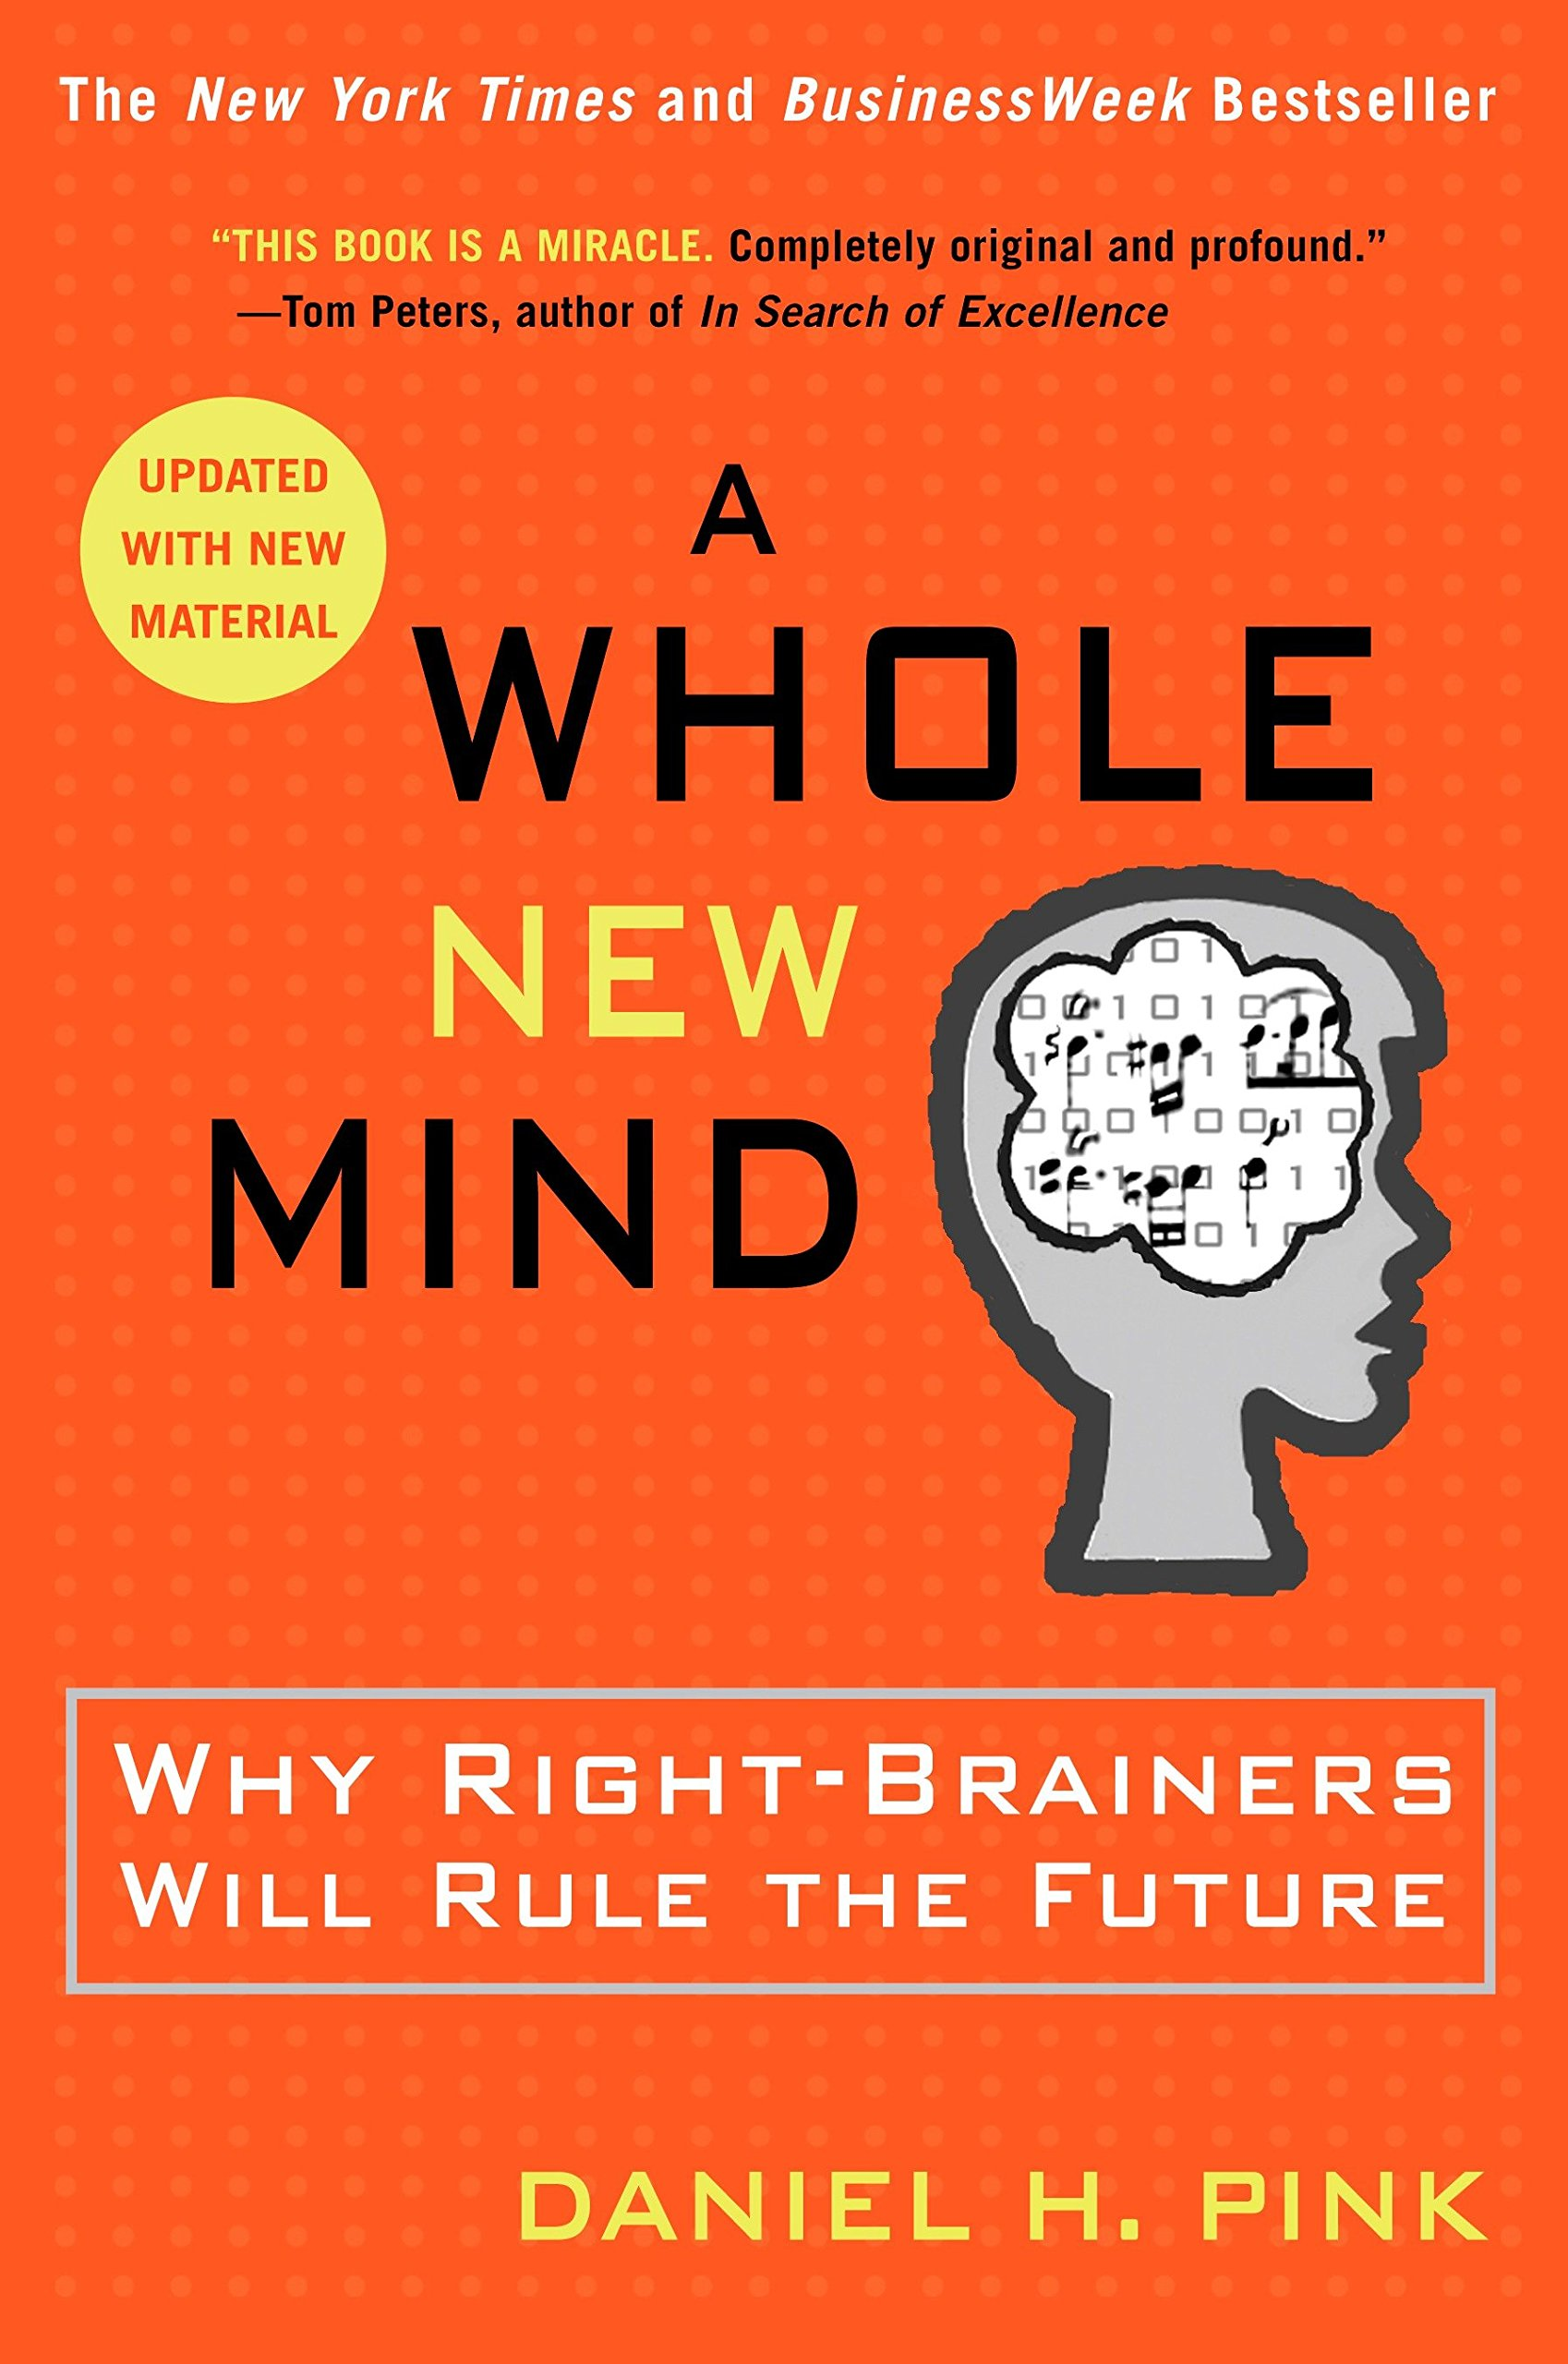 Daniel H. Pink - A Whole New Mind: Why Right-Brainers Will Rule the Future